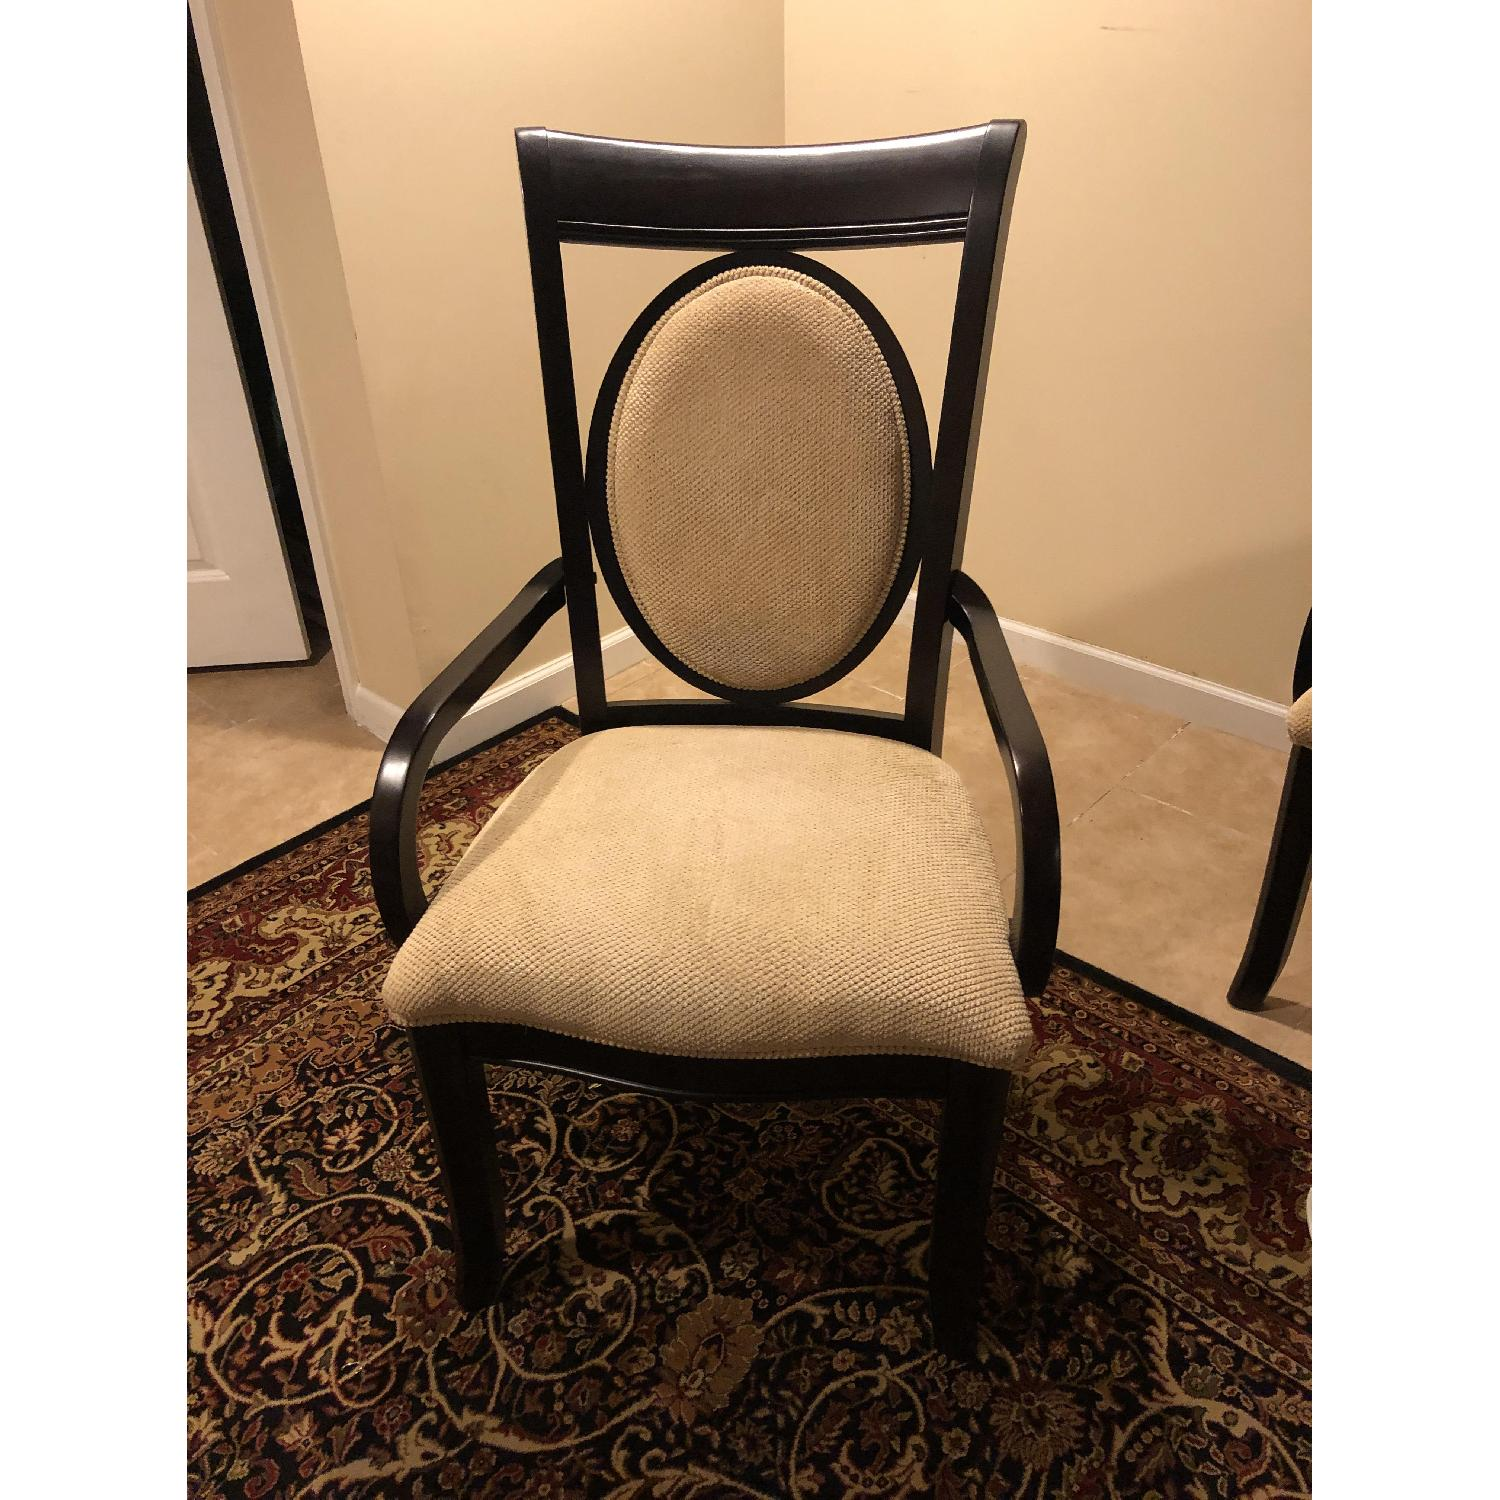 Raymour & Flanagan Solid Wood Upholstered Accent Chair-0